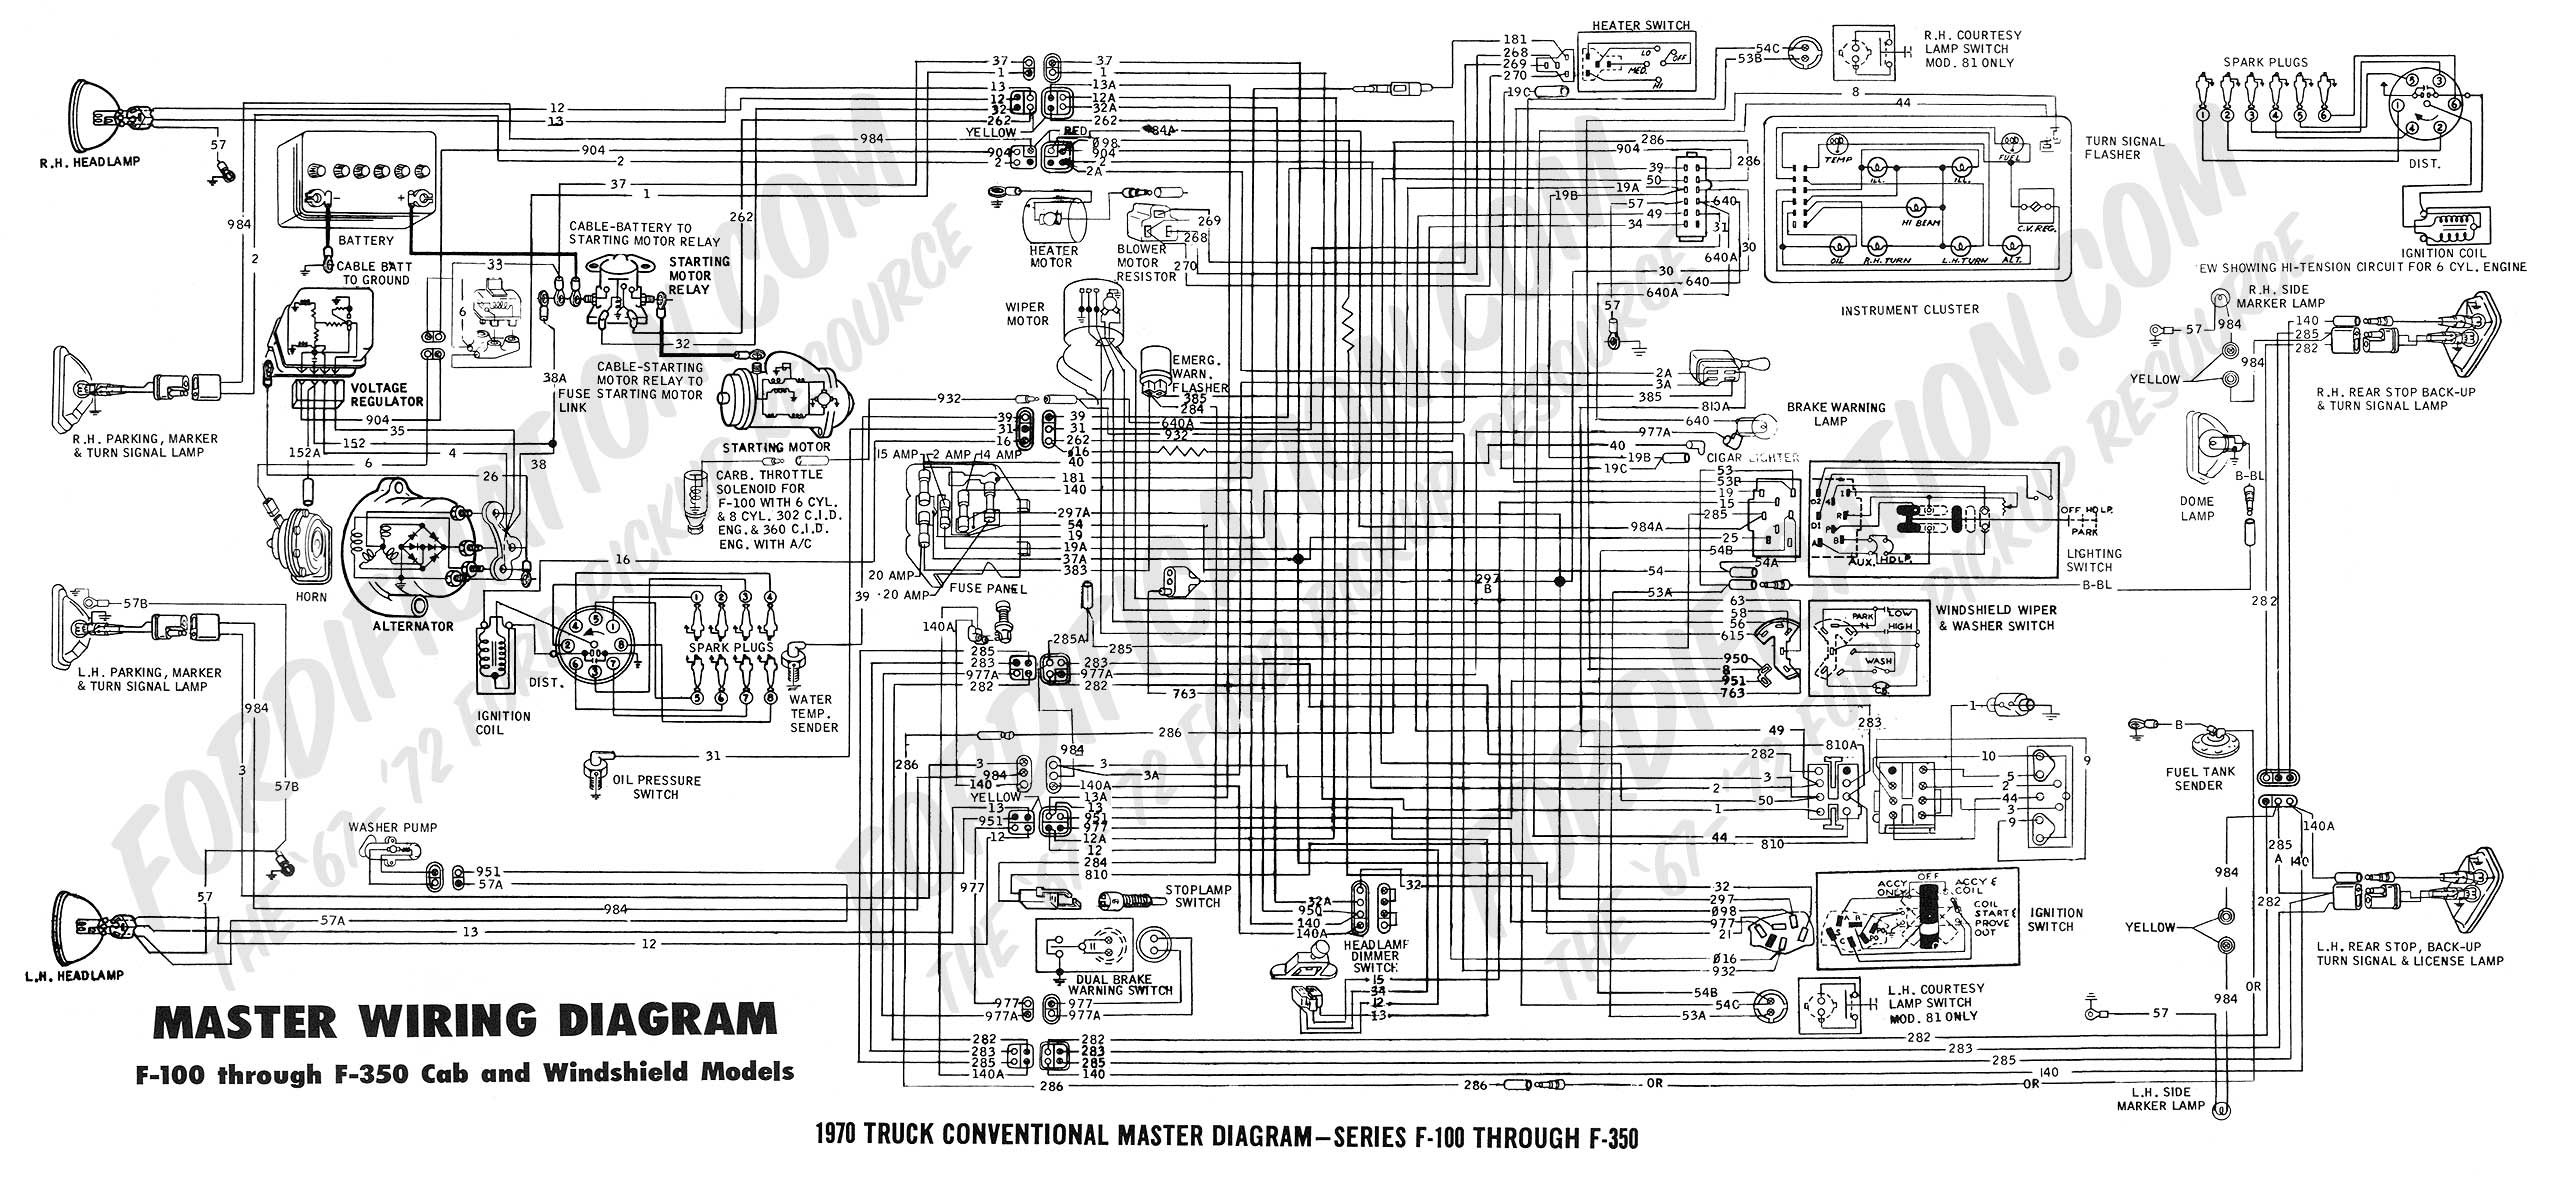 ford truck technical drawings and schematics section h wiring1970 f 100, f250 master diagram